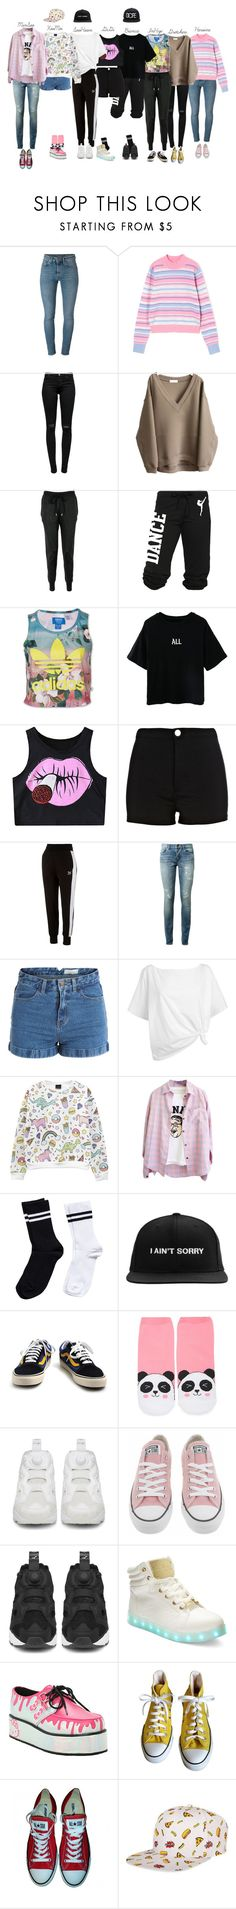 """"""" ℙ ❝  ❞ Dance Practice"""" by candy-ninjas ❤ liked on Polyvore featuring Yves Saint Laurent, J Brand, Markus Lupfer, adidas, WithChic, Chicnova Fashion, River Island, Puma, Pieces and Red Herring"""